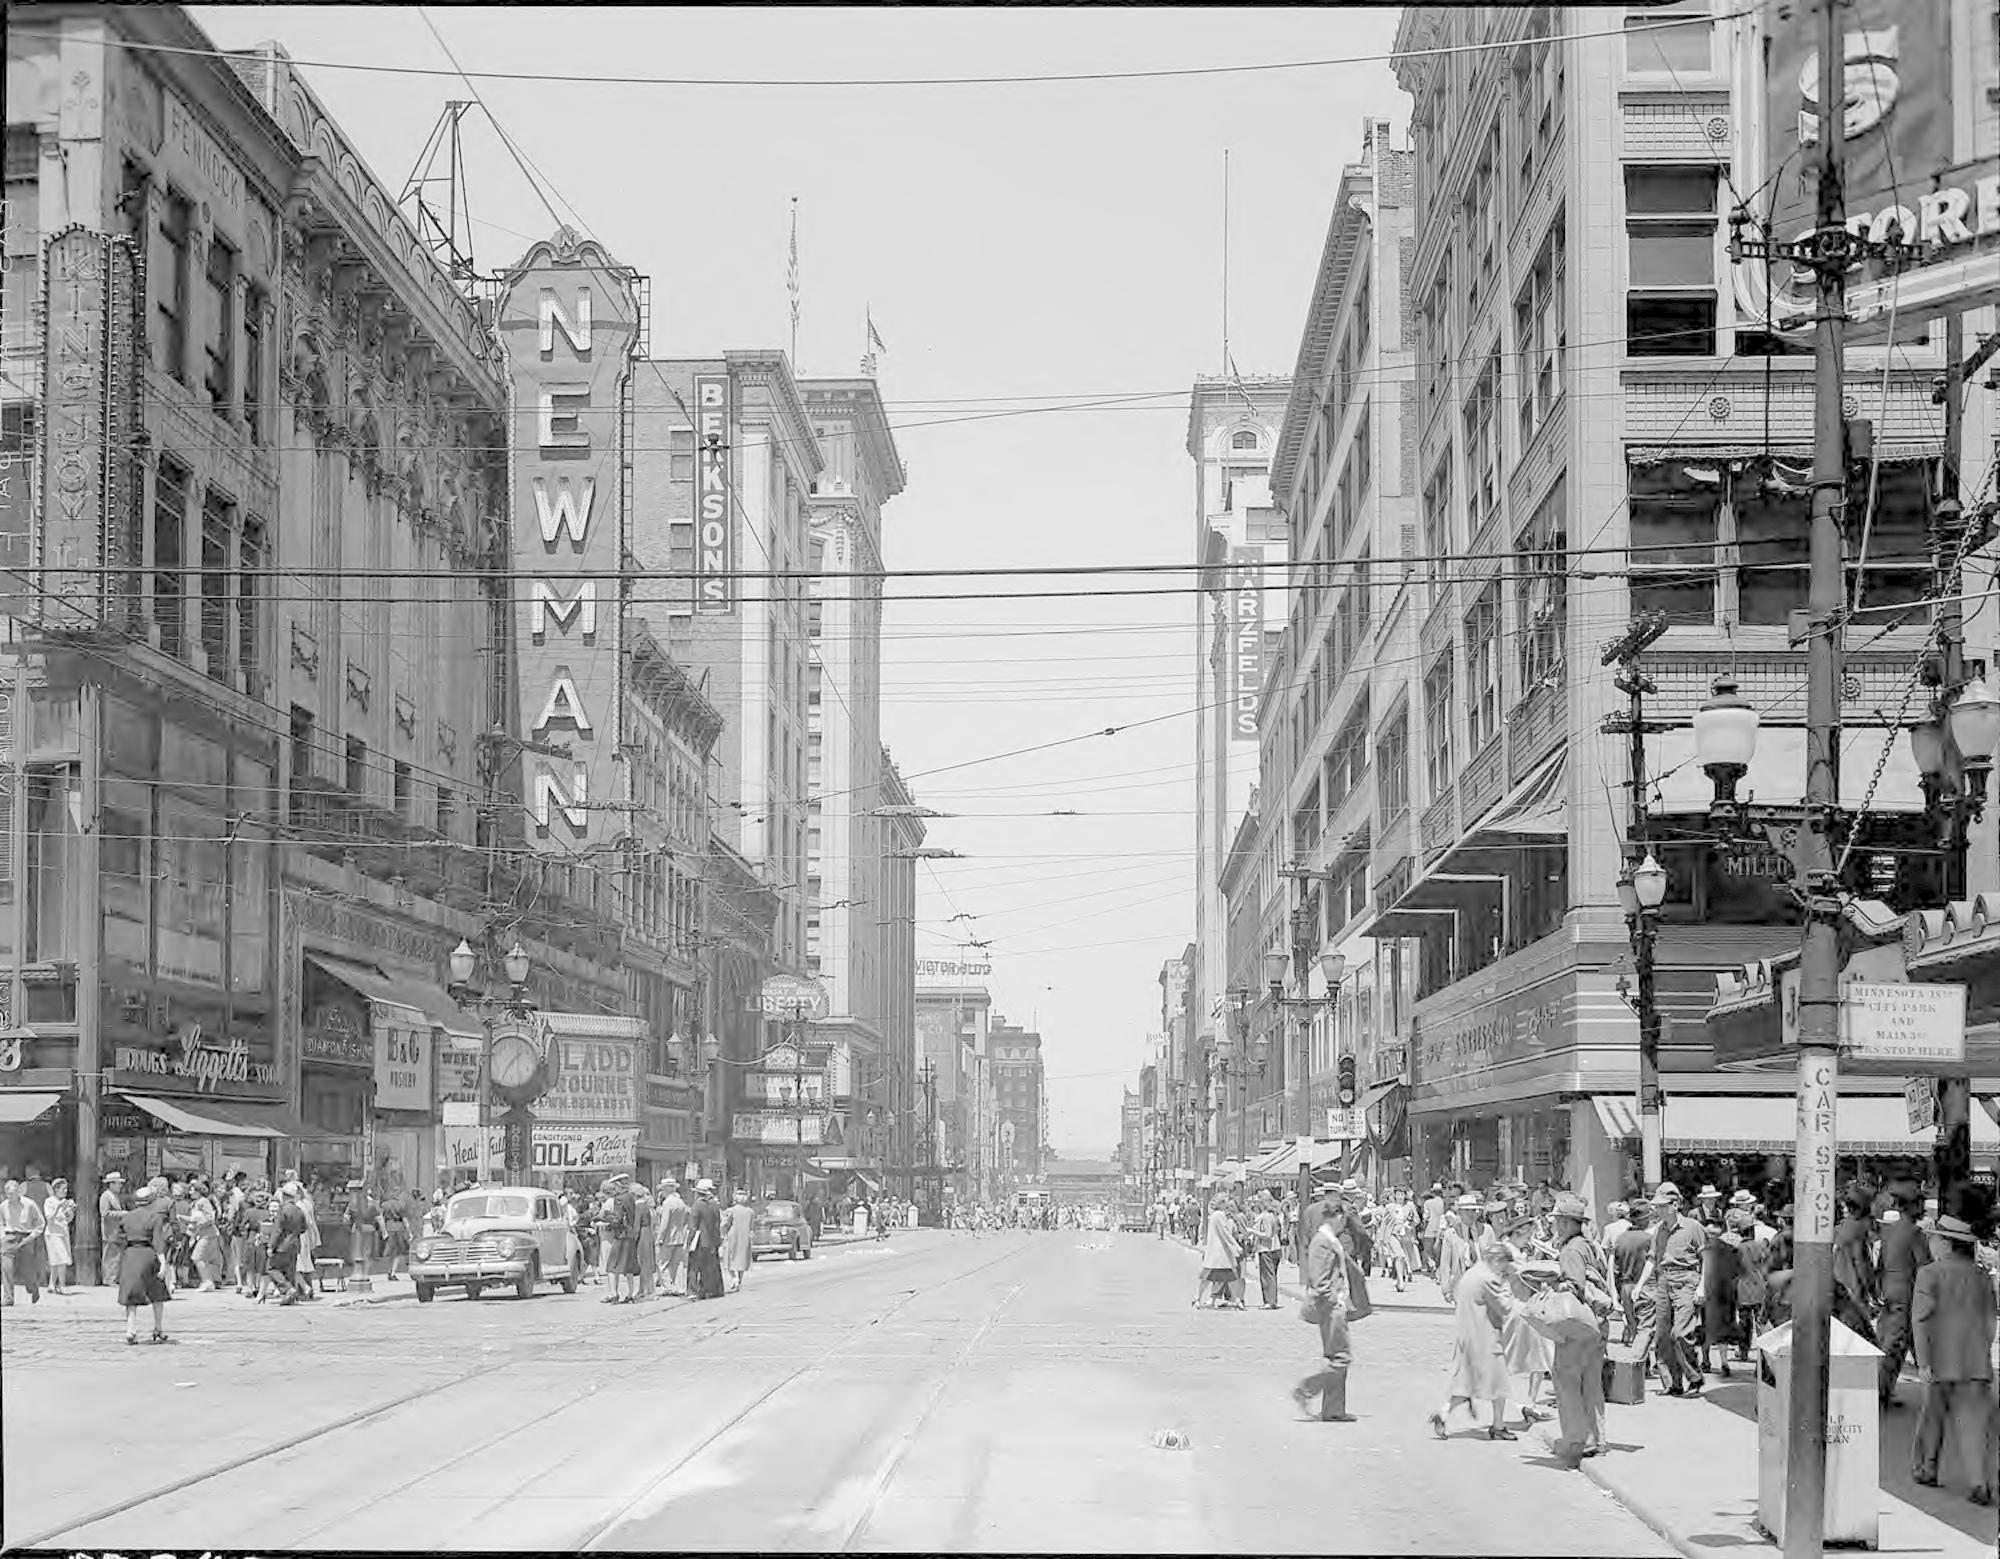 View of Main Street looking north from 12th Street in the 1940s. The Newman can be seen on the left, before it was renamed the Paramount. Image courtesy of the Missouri Valley Special Collections.